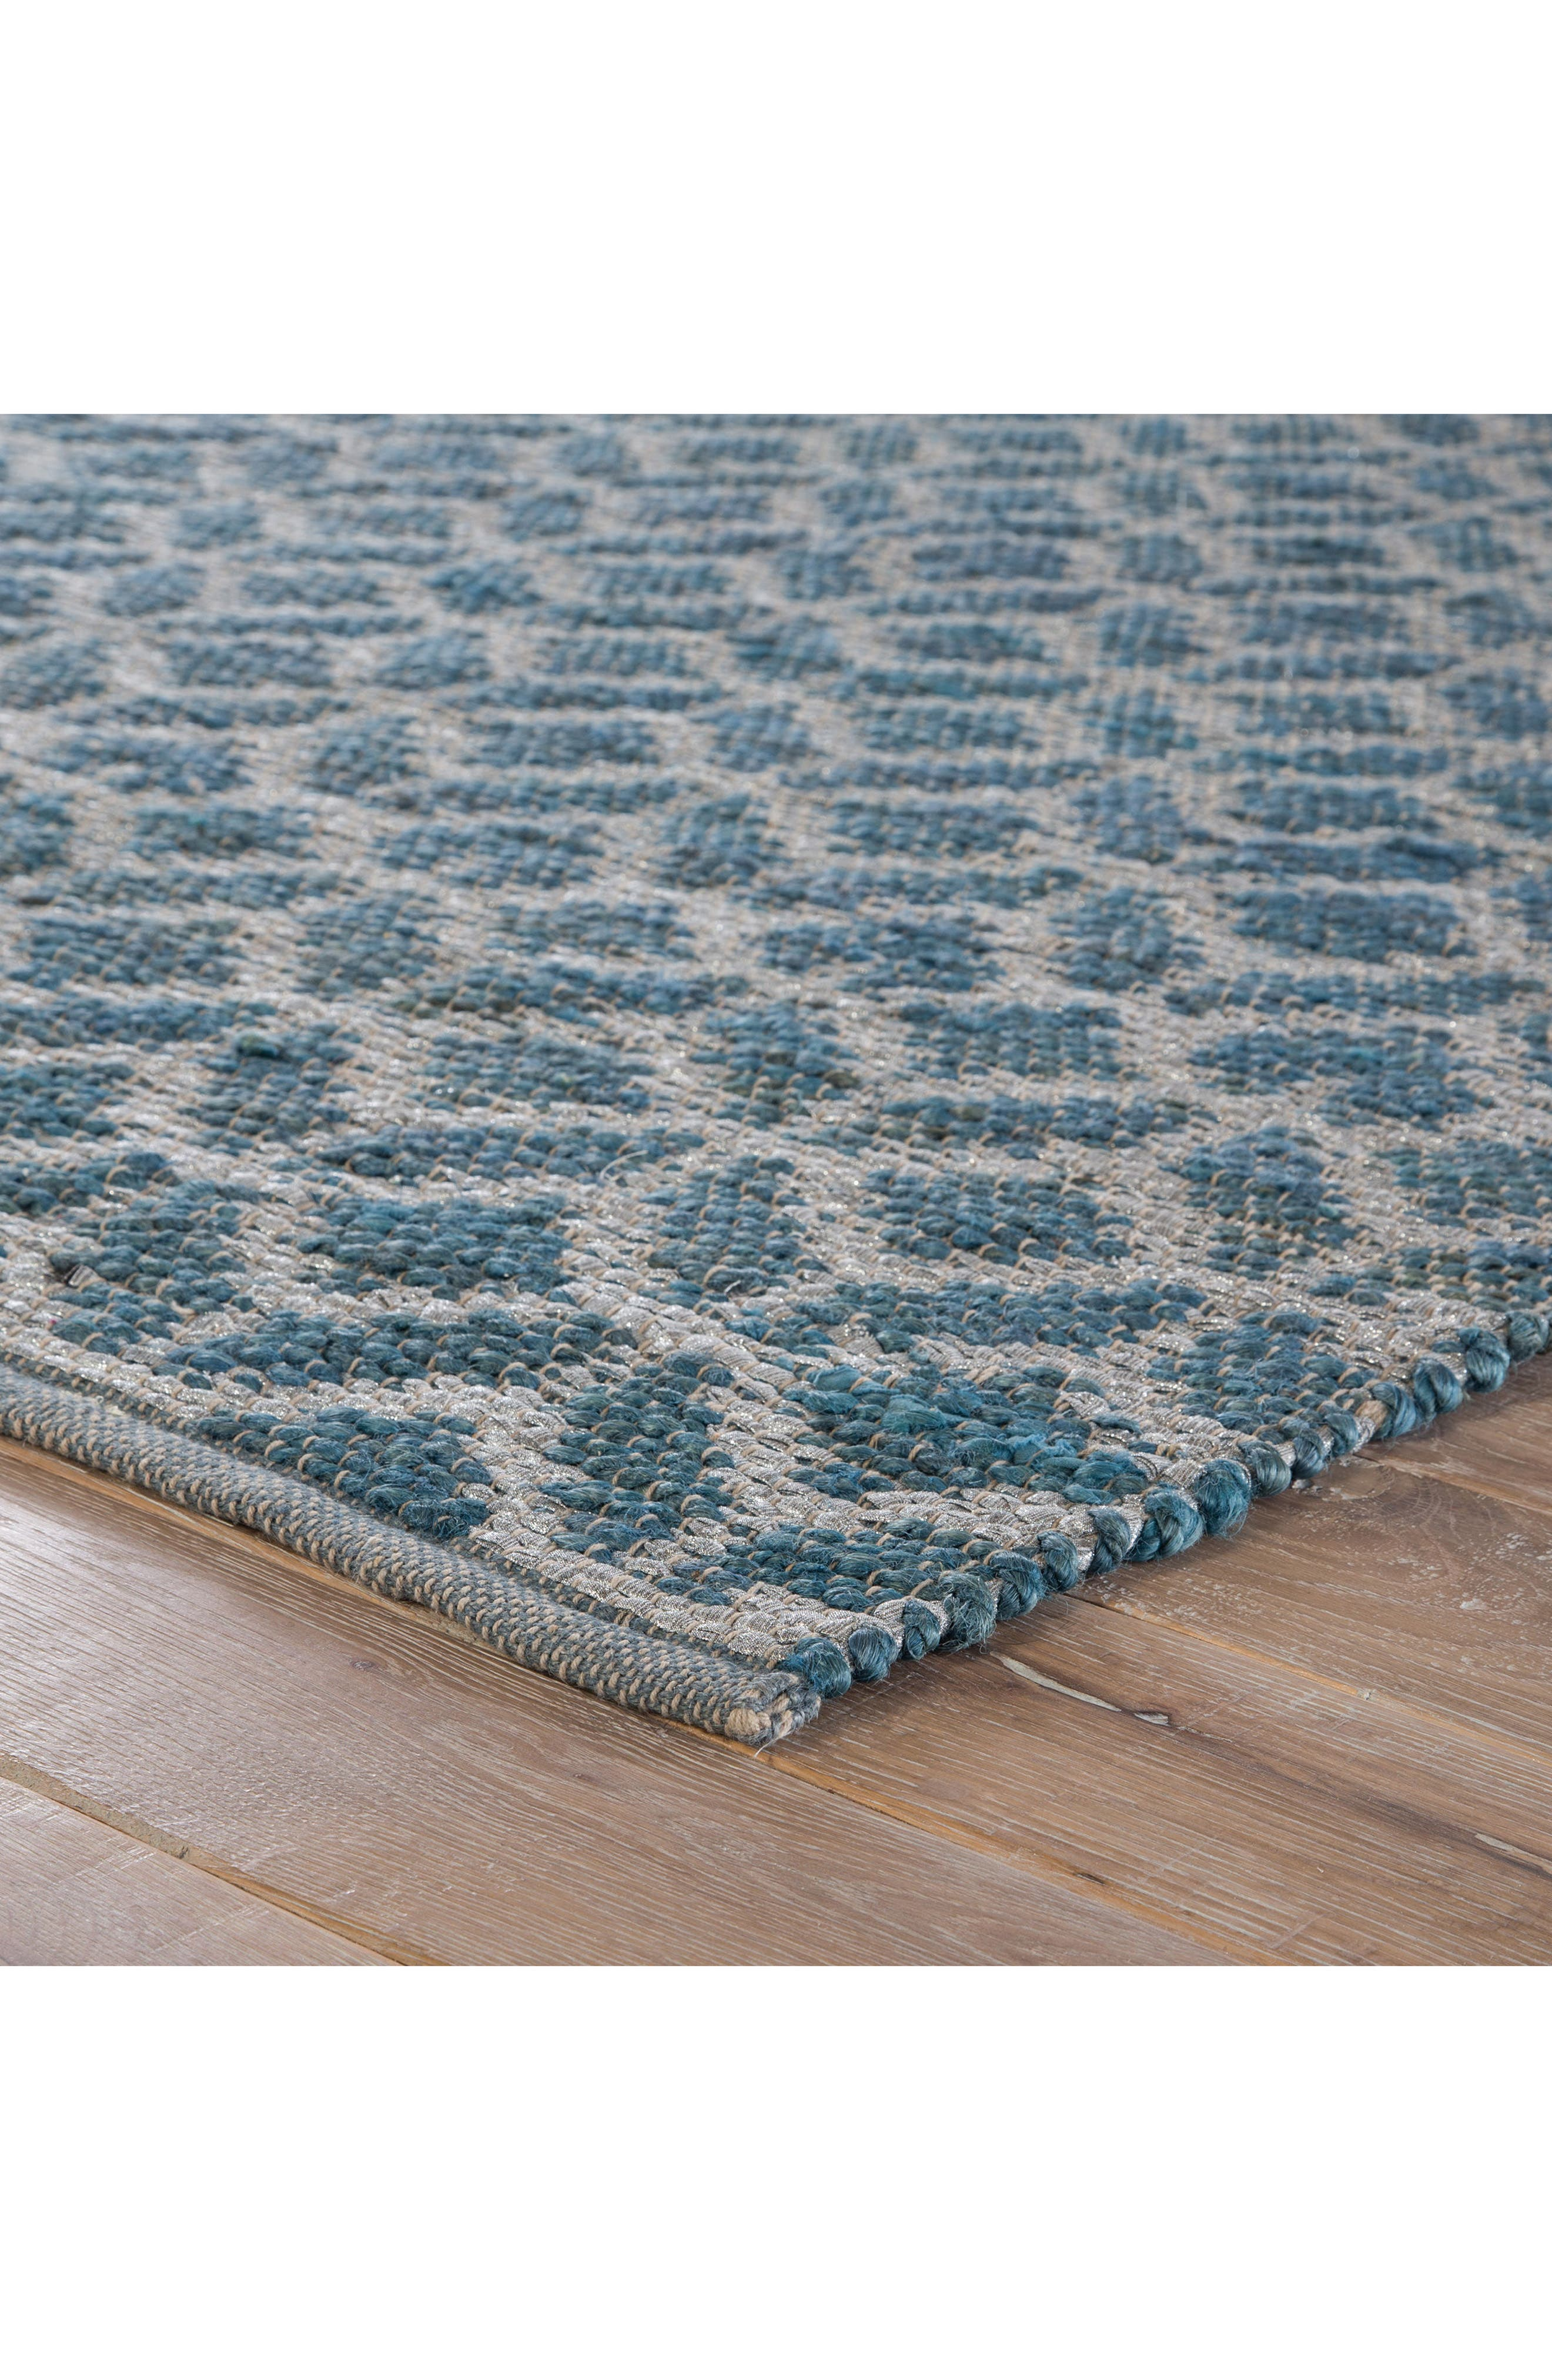 Calm Waters Rug,                             Alternate thumbnail 5, color,                             INDIAN TEAL/ SILVER